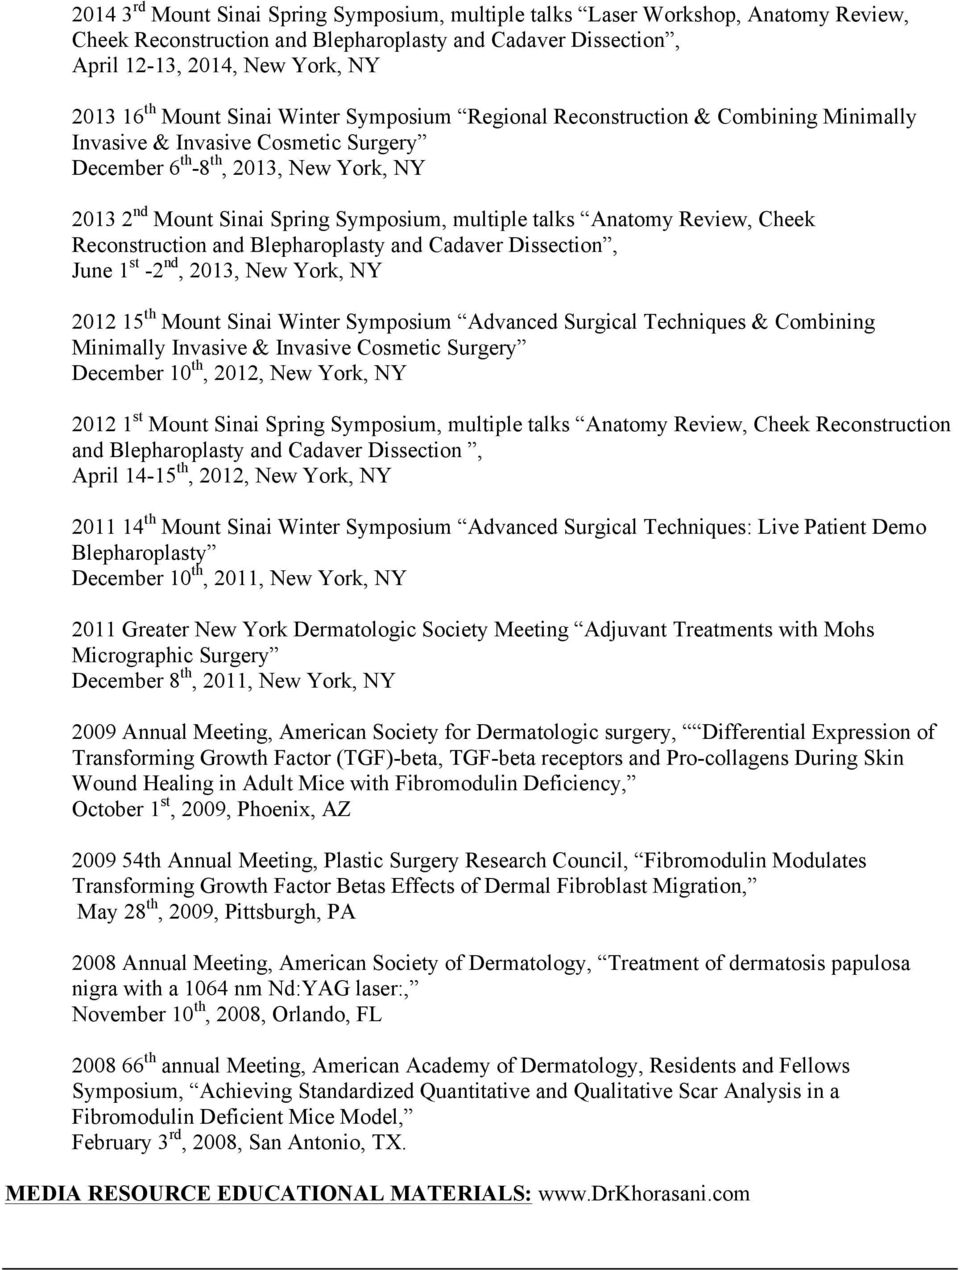 Mount Sinai School of Medicine, New York, NY Assistant